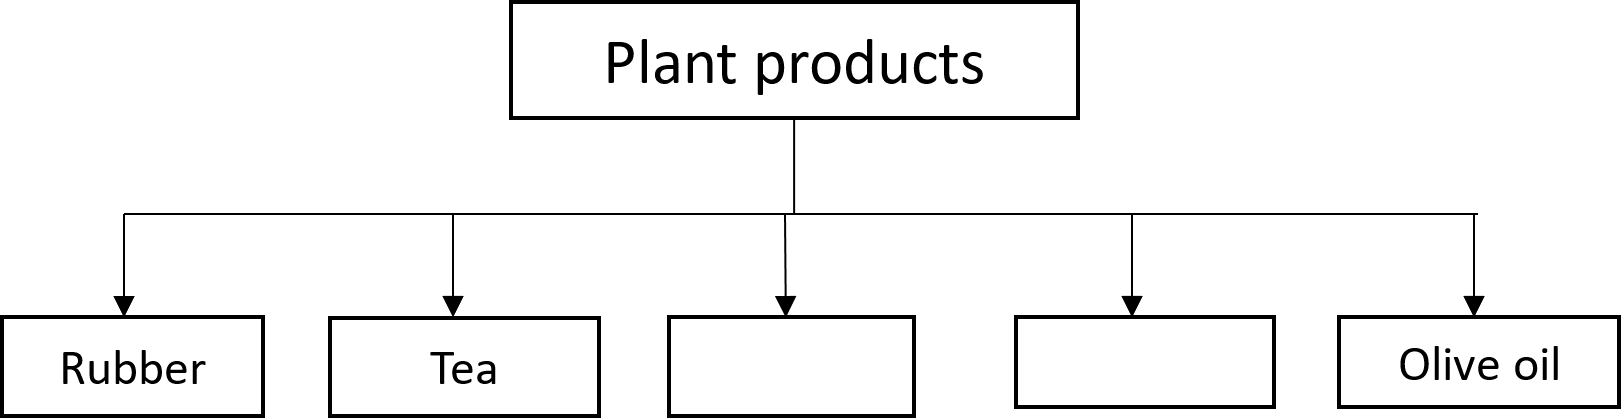 Name the plant products